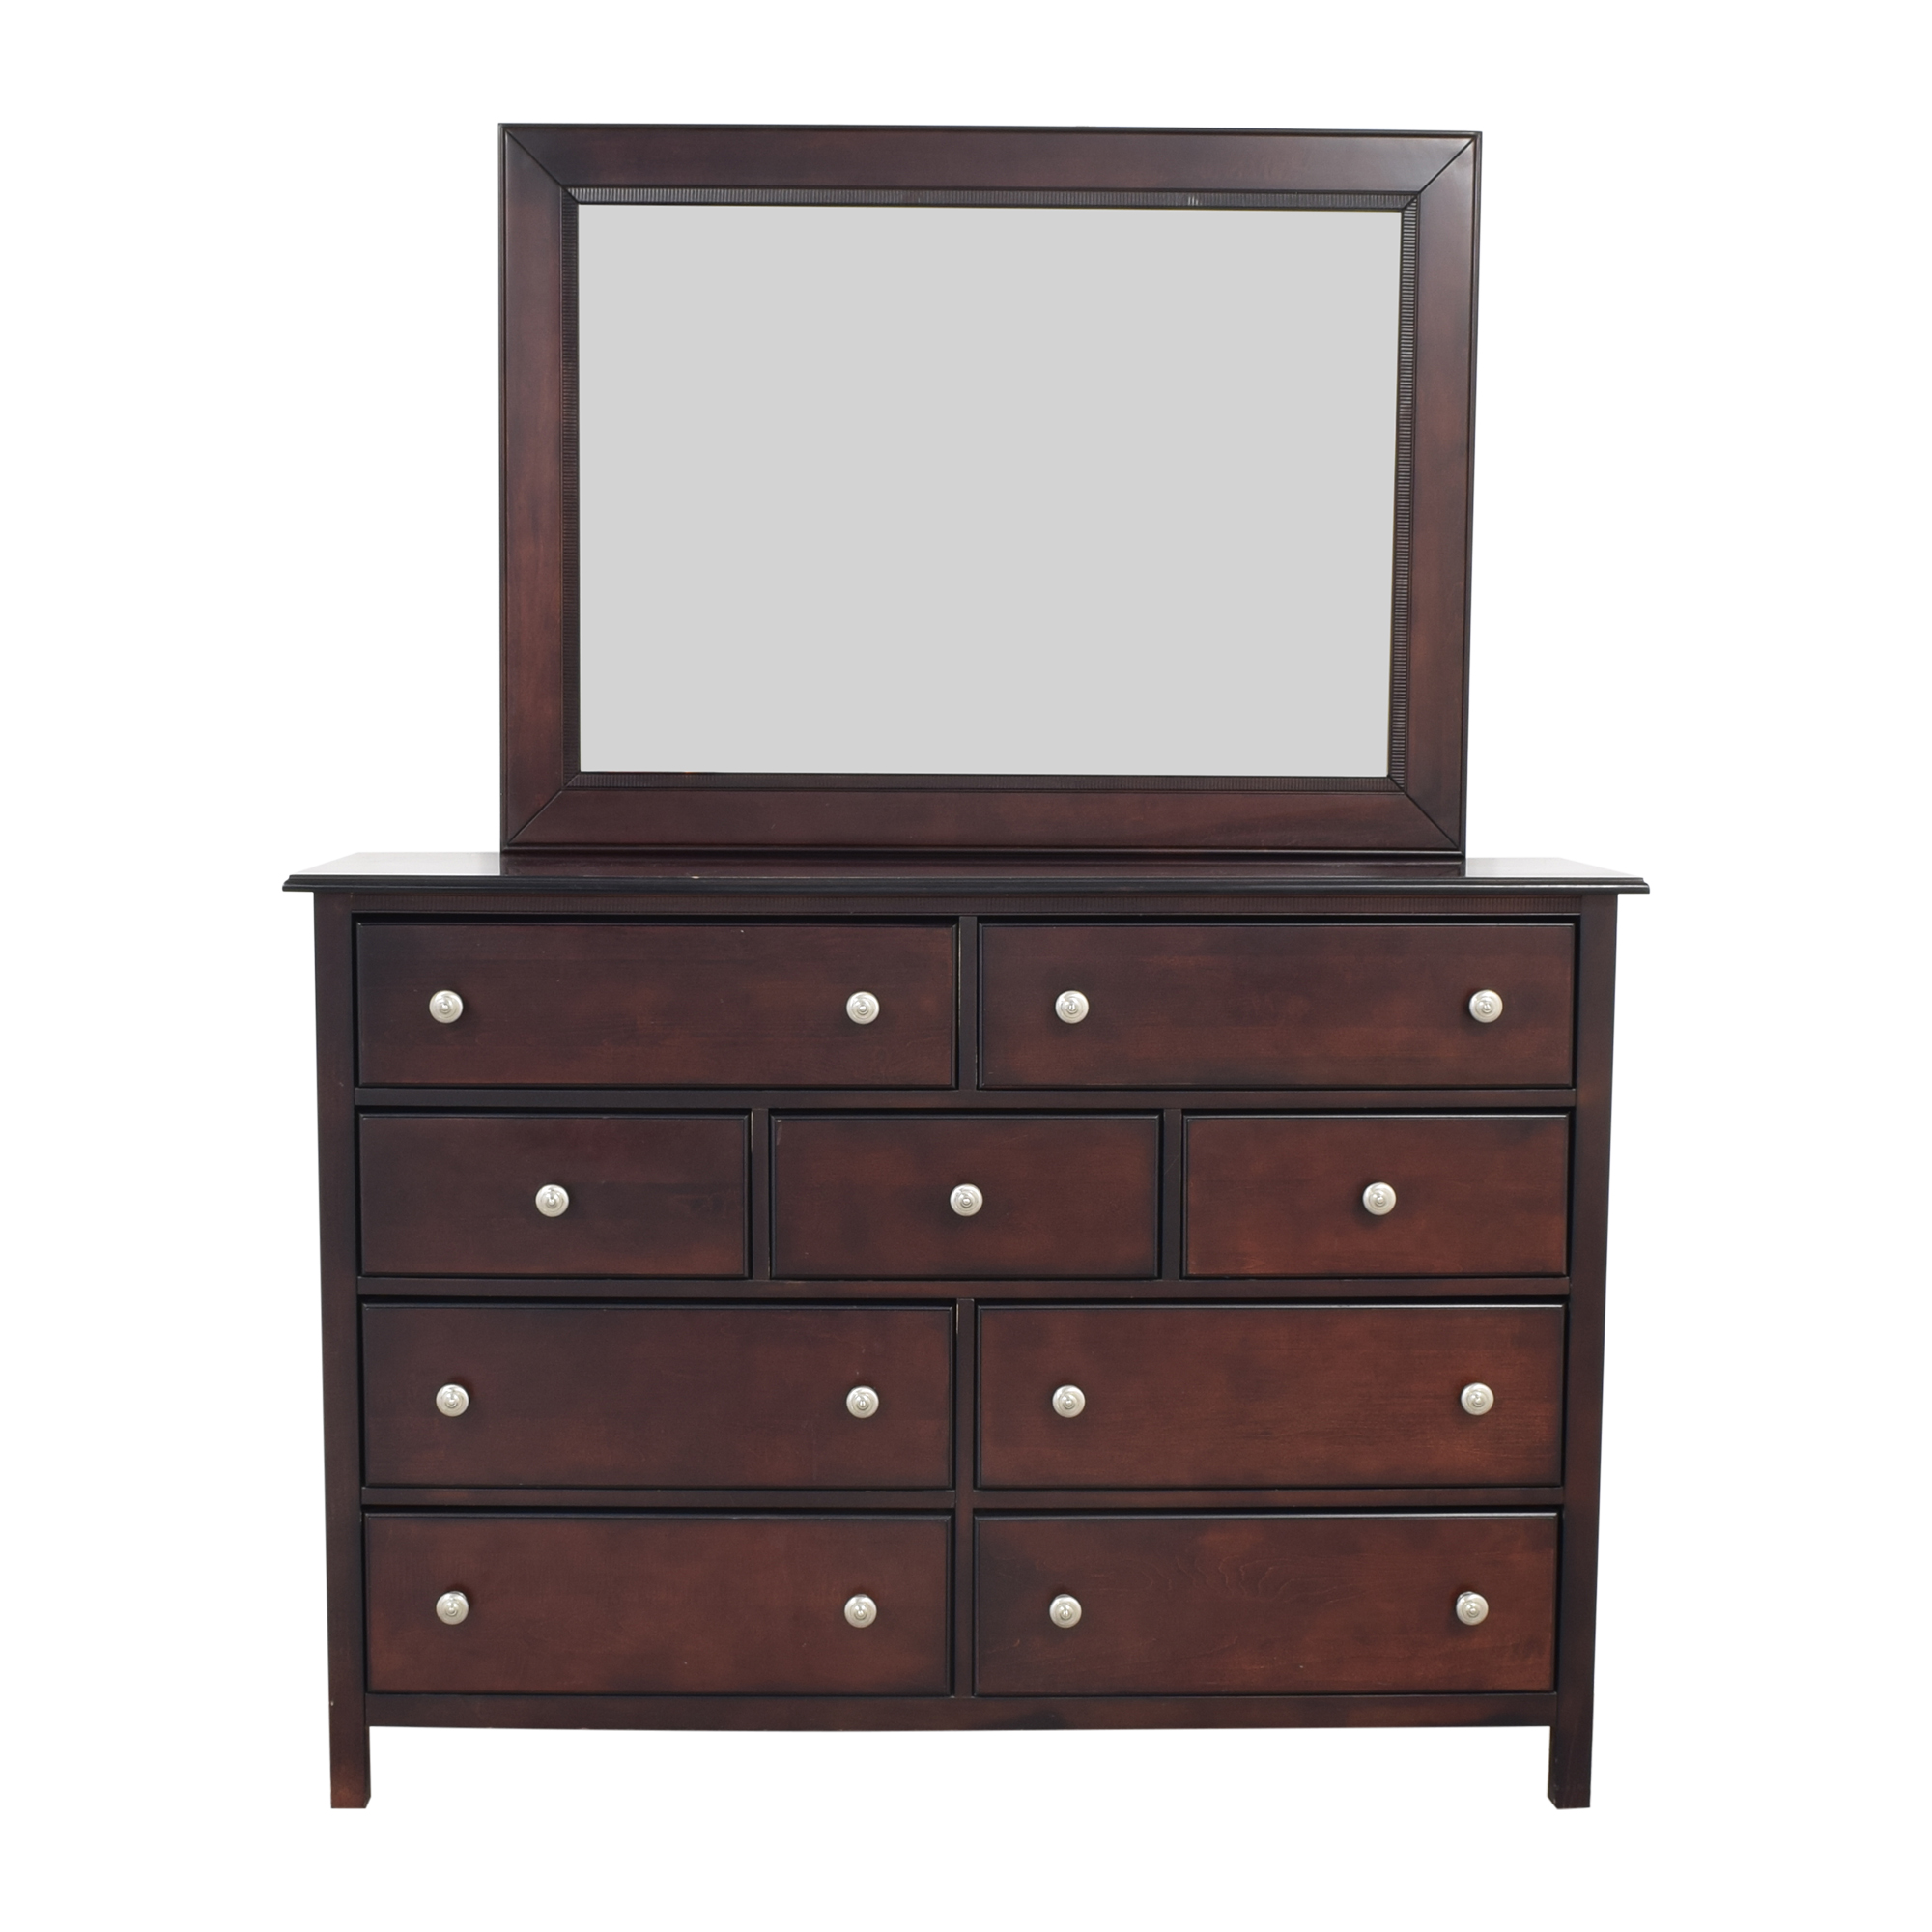 shop Cresent Murray Hill 9-Drawer Dresser with Mirror Cresent Furniture Storage